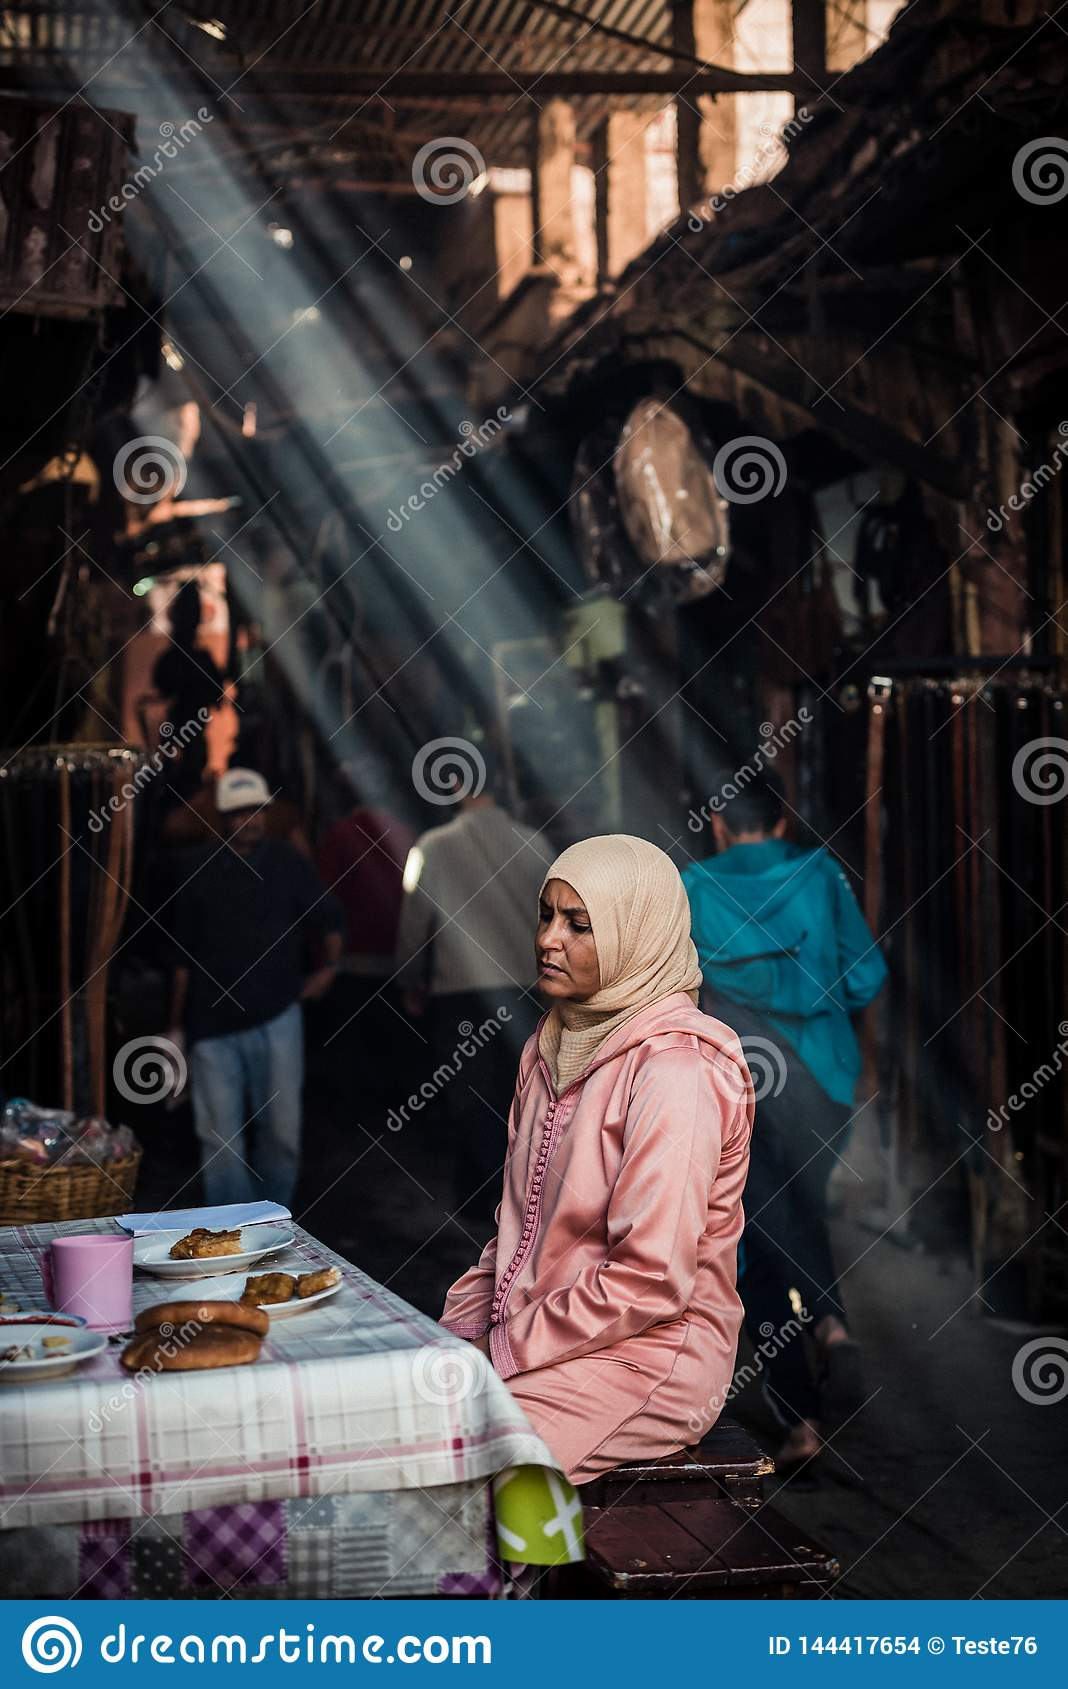 Ray of light. Portrait of an arabian woman sitting at a table as seen in Marrakesh